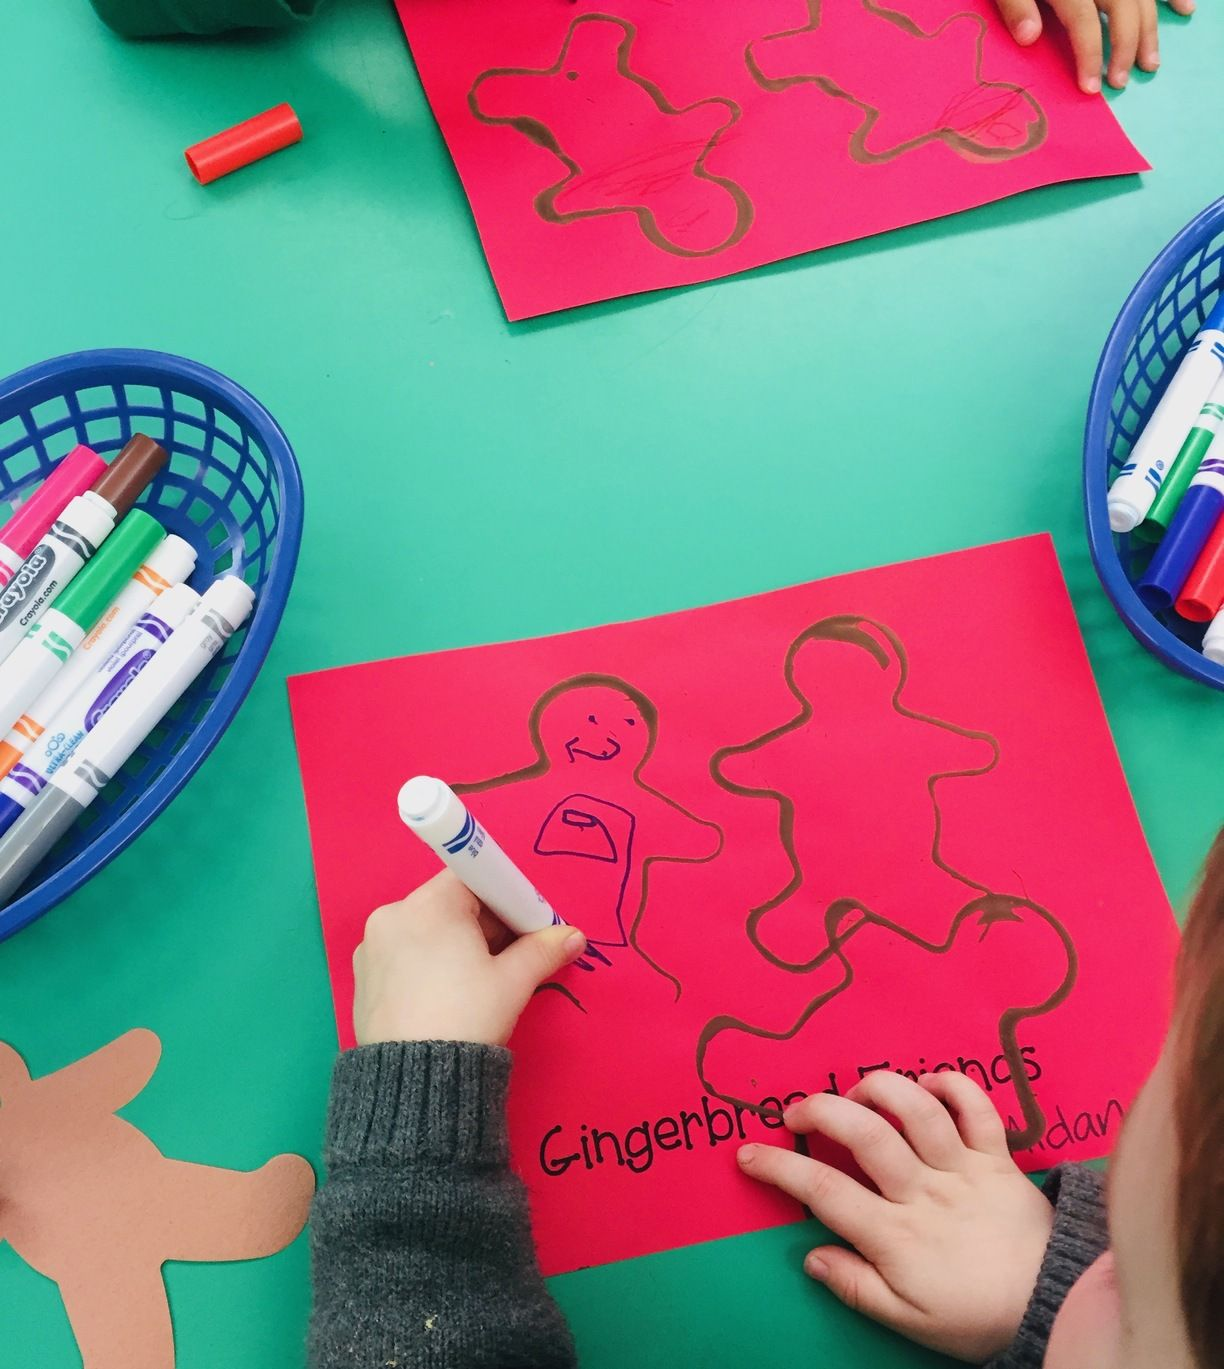 Gingerbread Man Lesson Plans For Preschool And Prek This